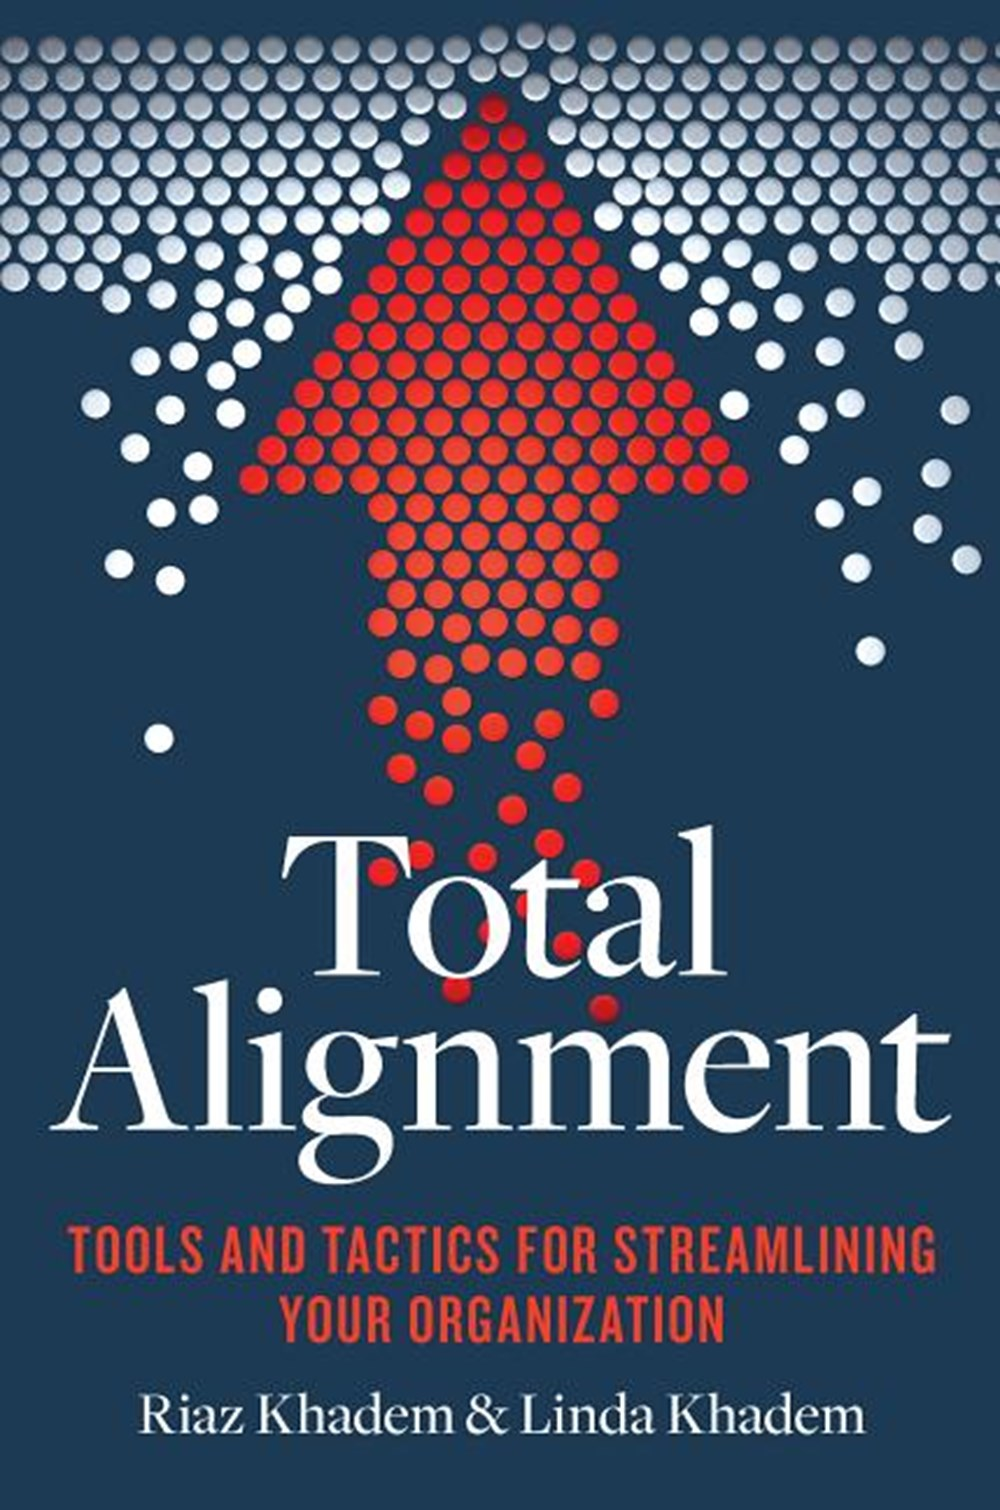 Total Alignment Tools and Tactics for Streamlining Your Organization